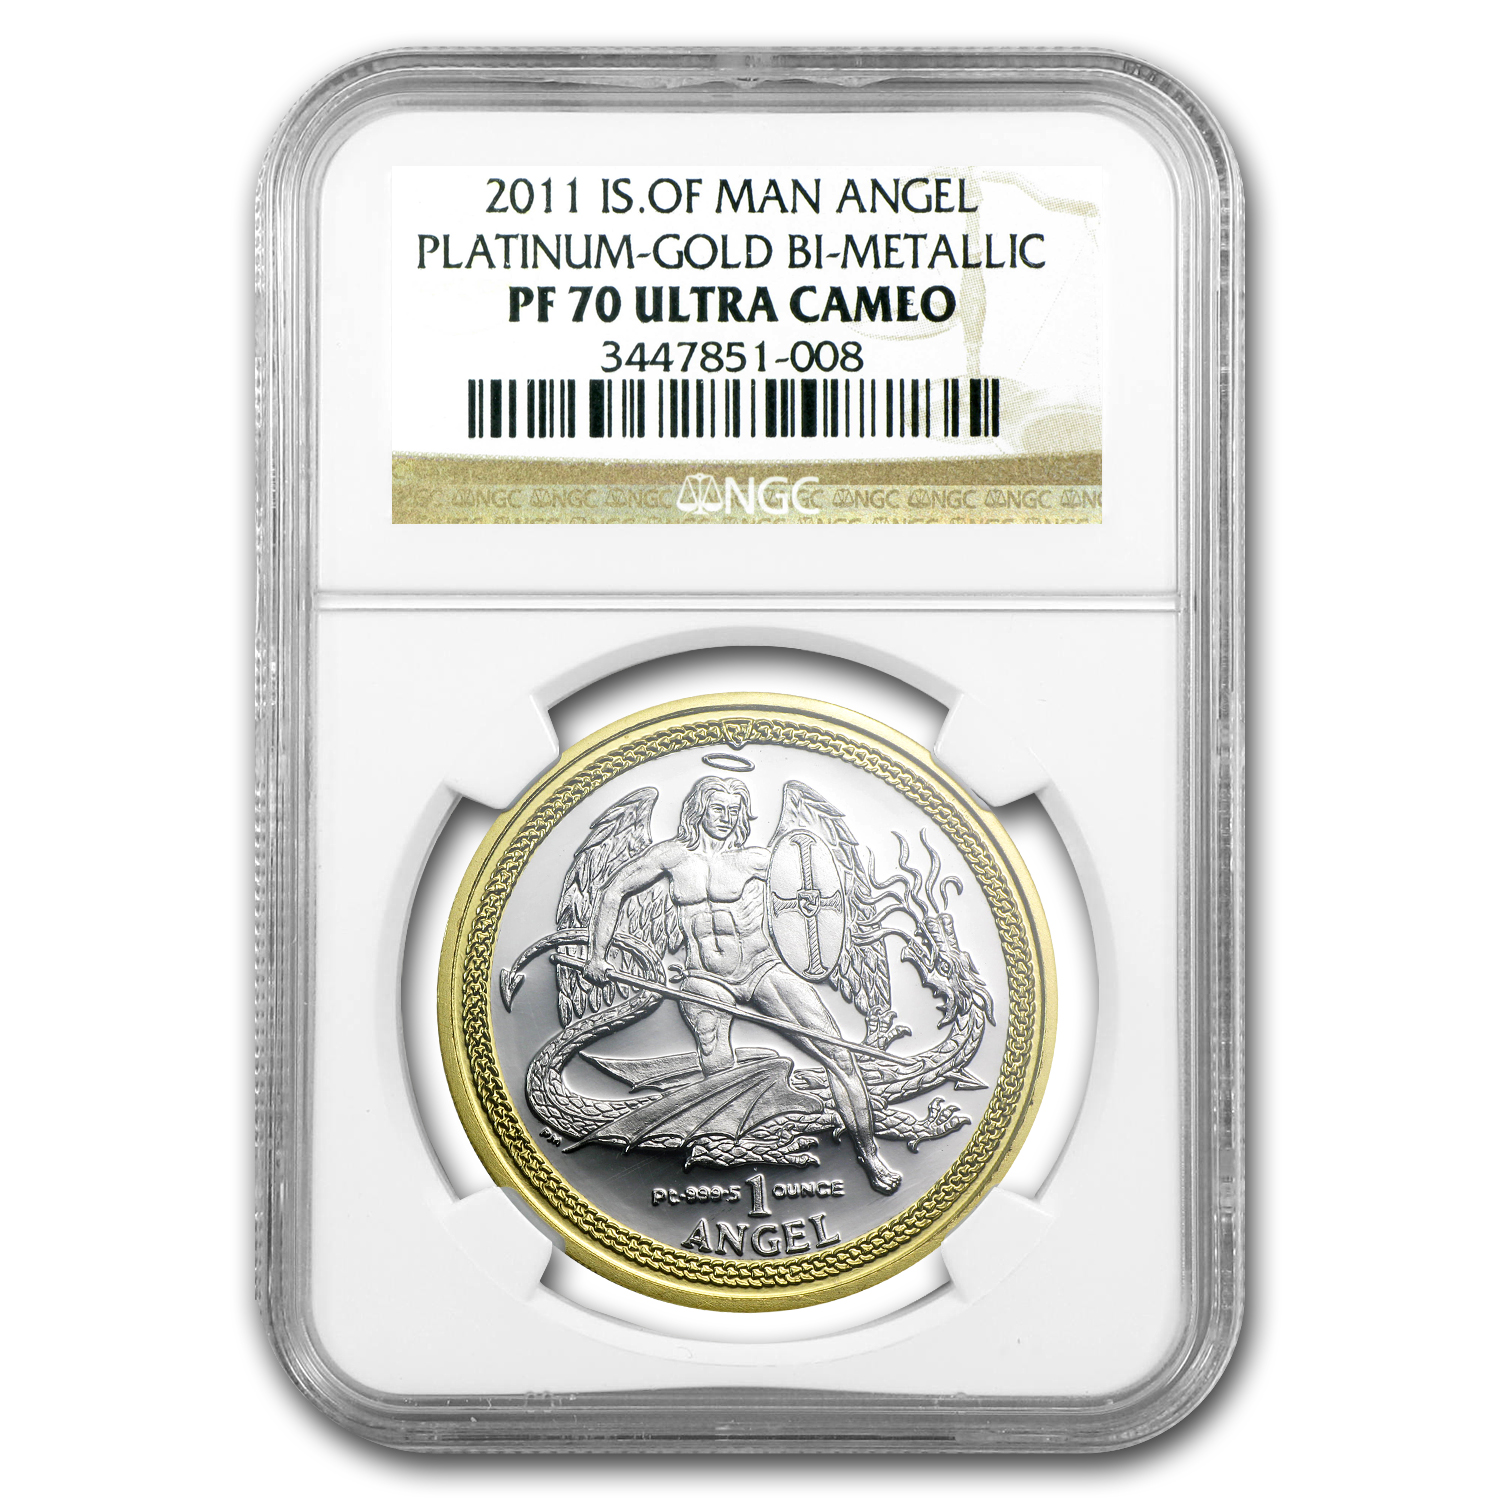 2011 Isle of Man Bi-Metallic Angel Plat/Gold PF-70 NGC